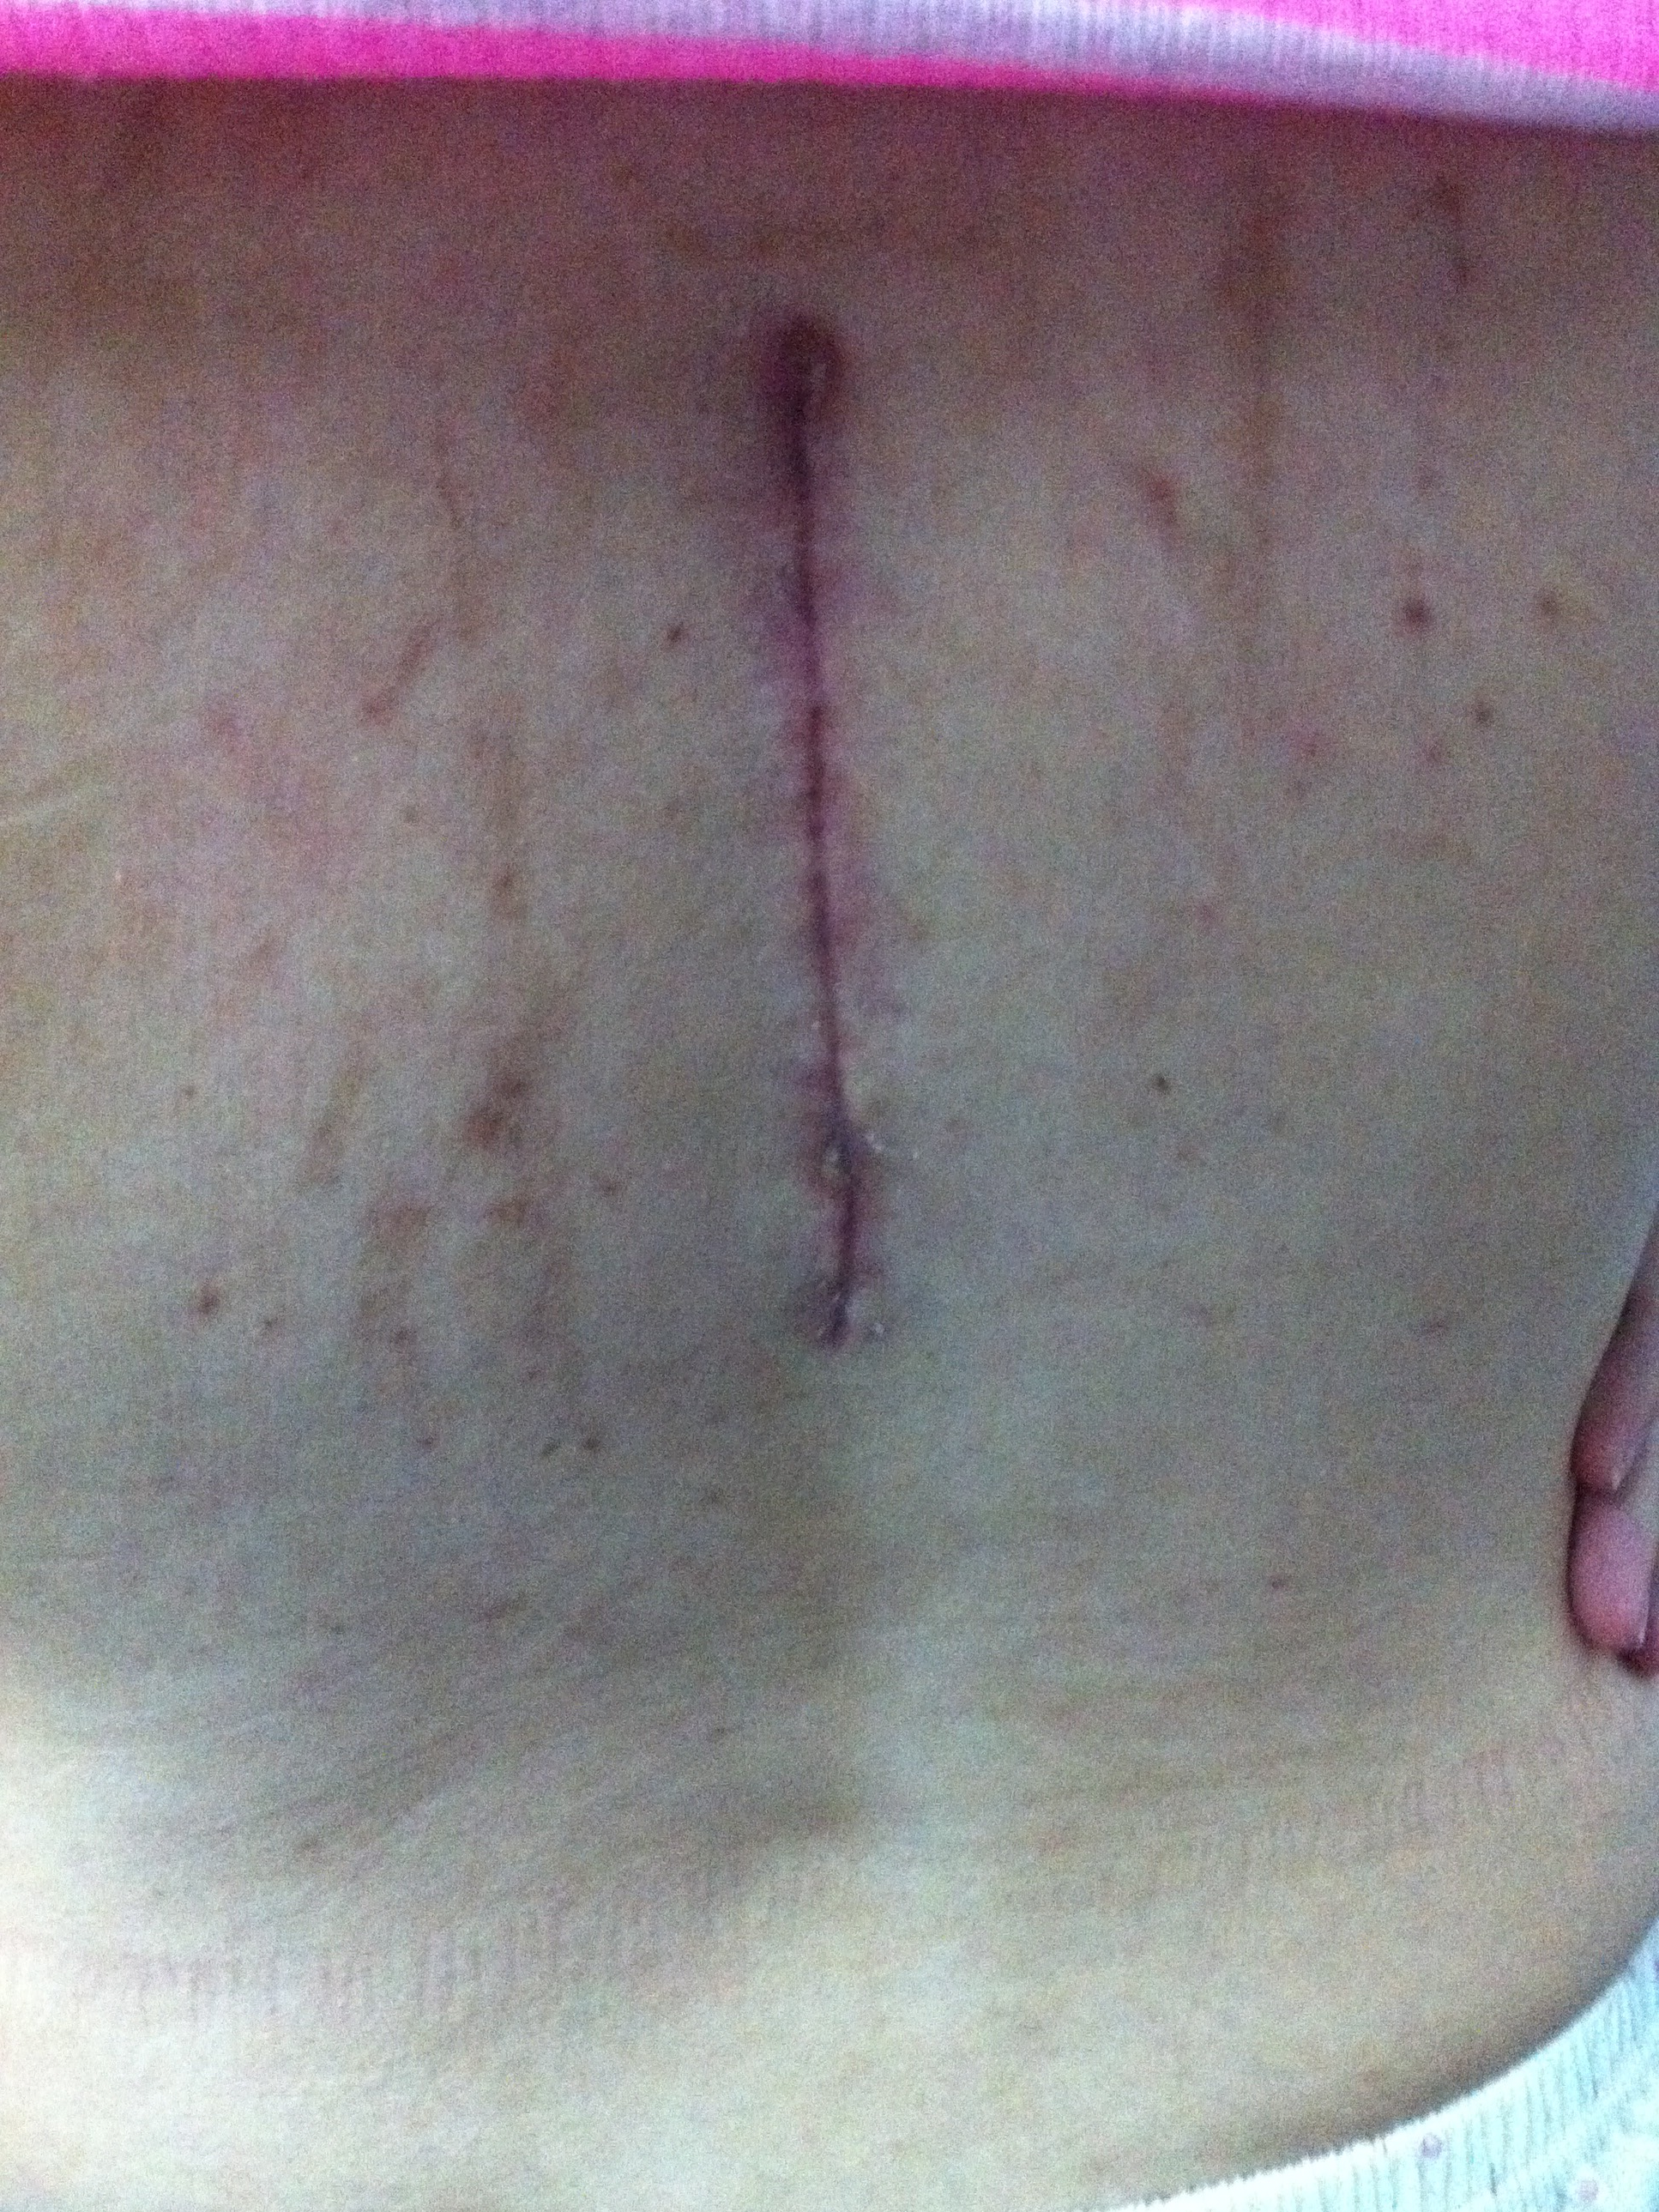 The scar that the operation left